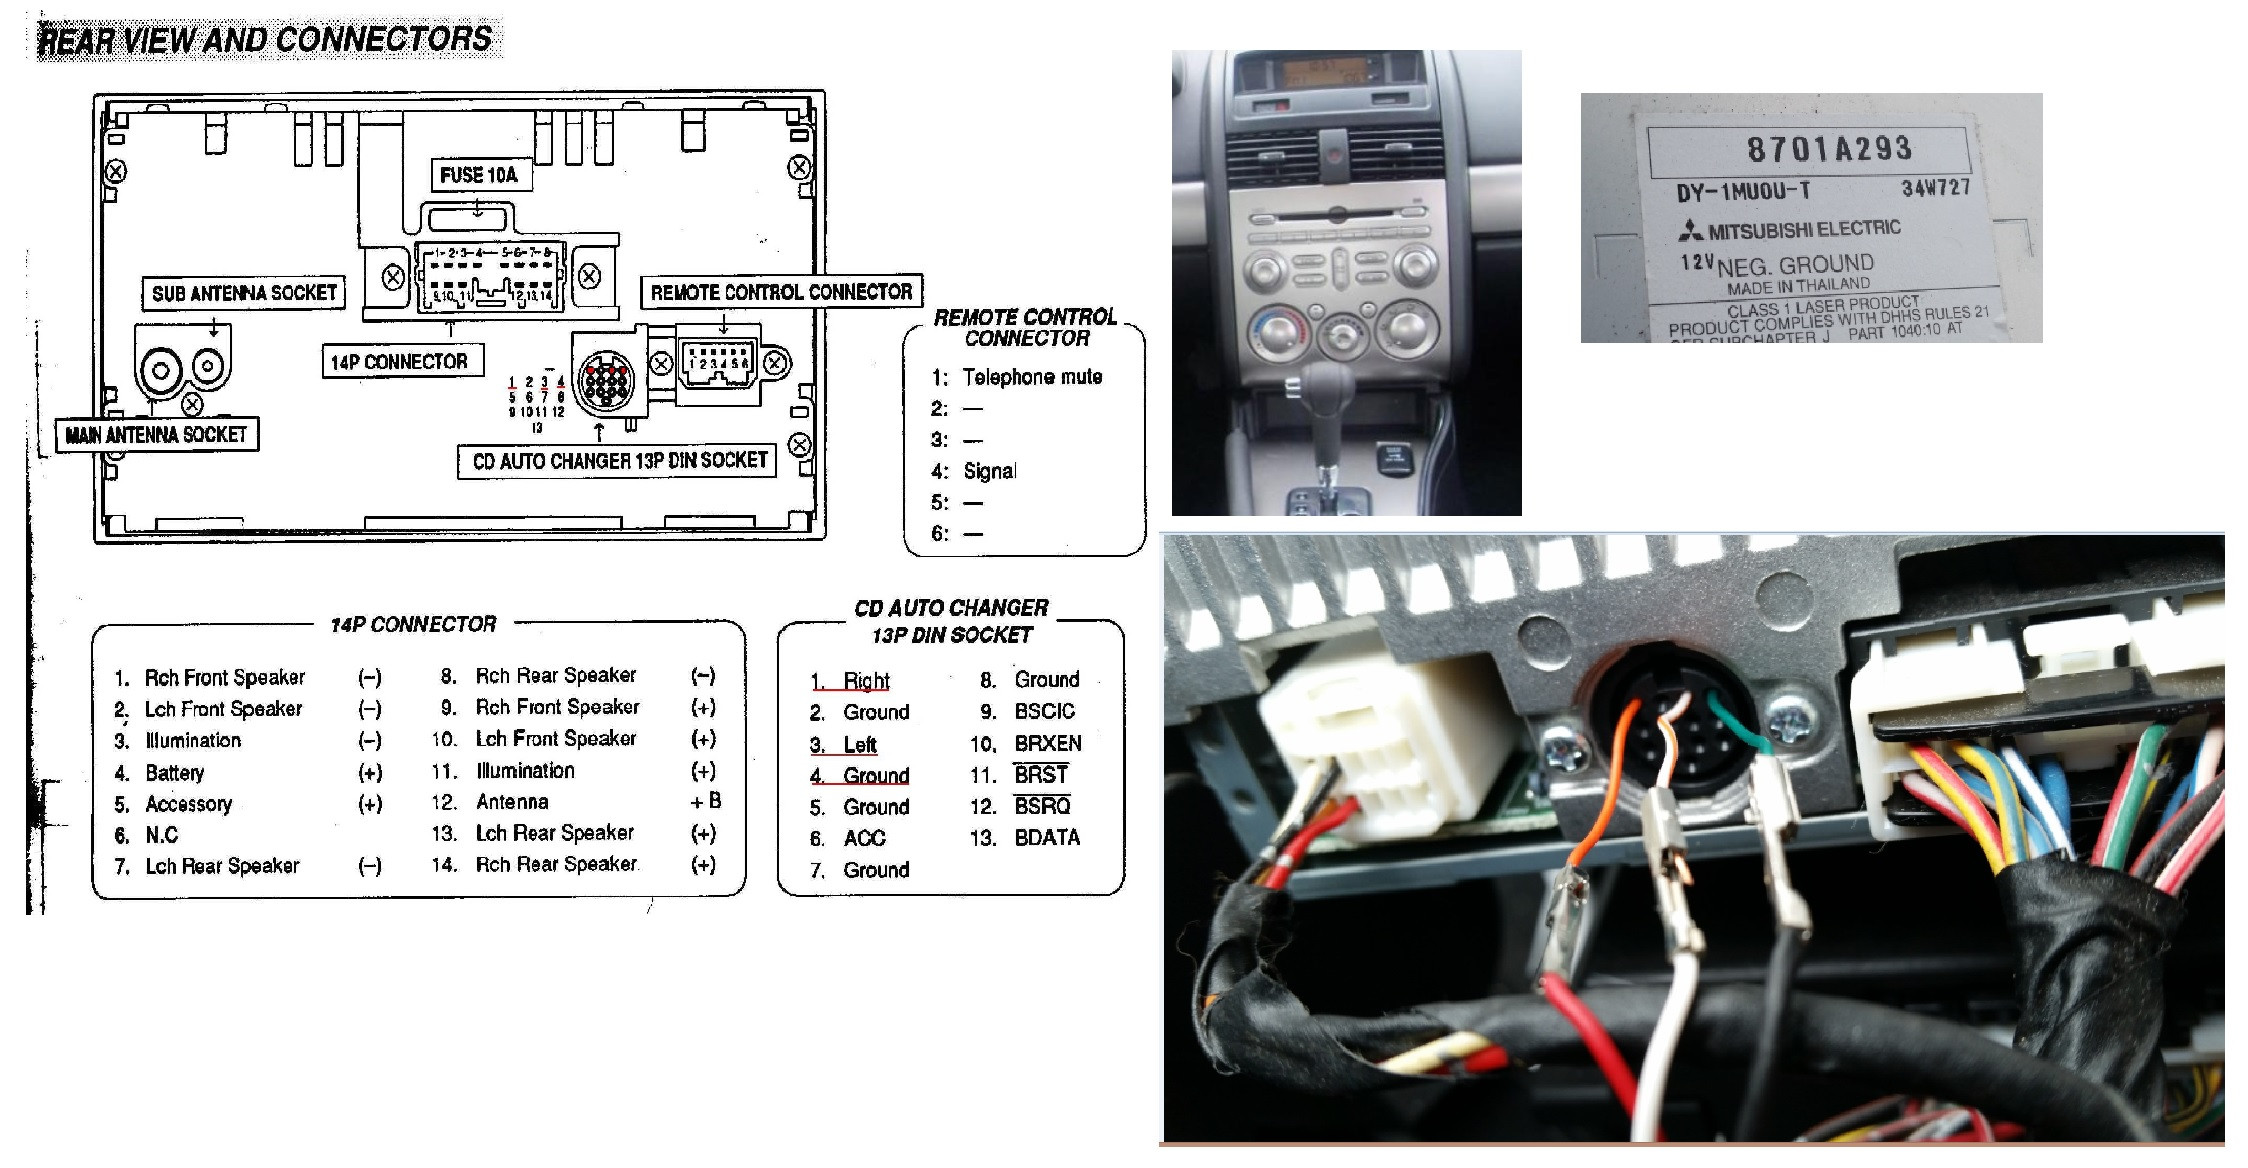 01 galant stereo wiring harness diagram 2004 mitsubishi endeavor radio wiring e1 wiring diagram  2004 mitsubishi endeavor radio wiring